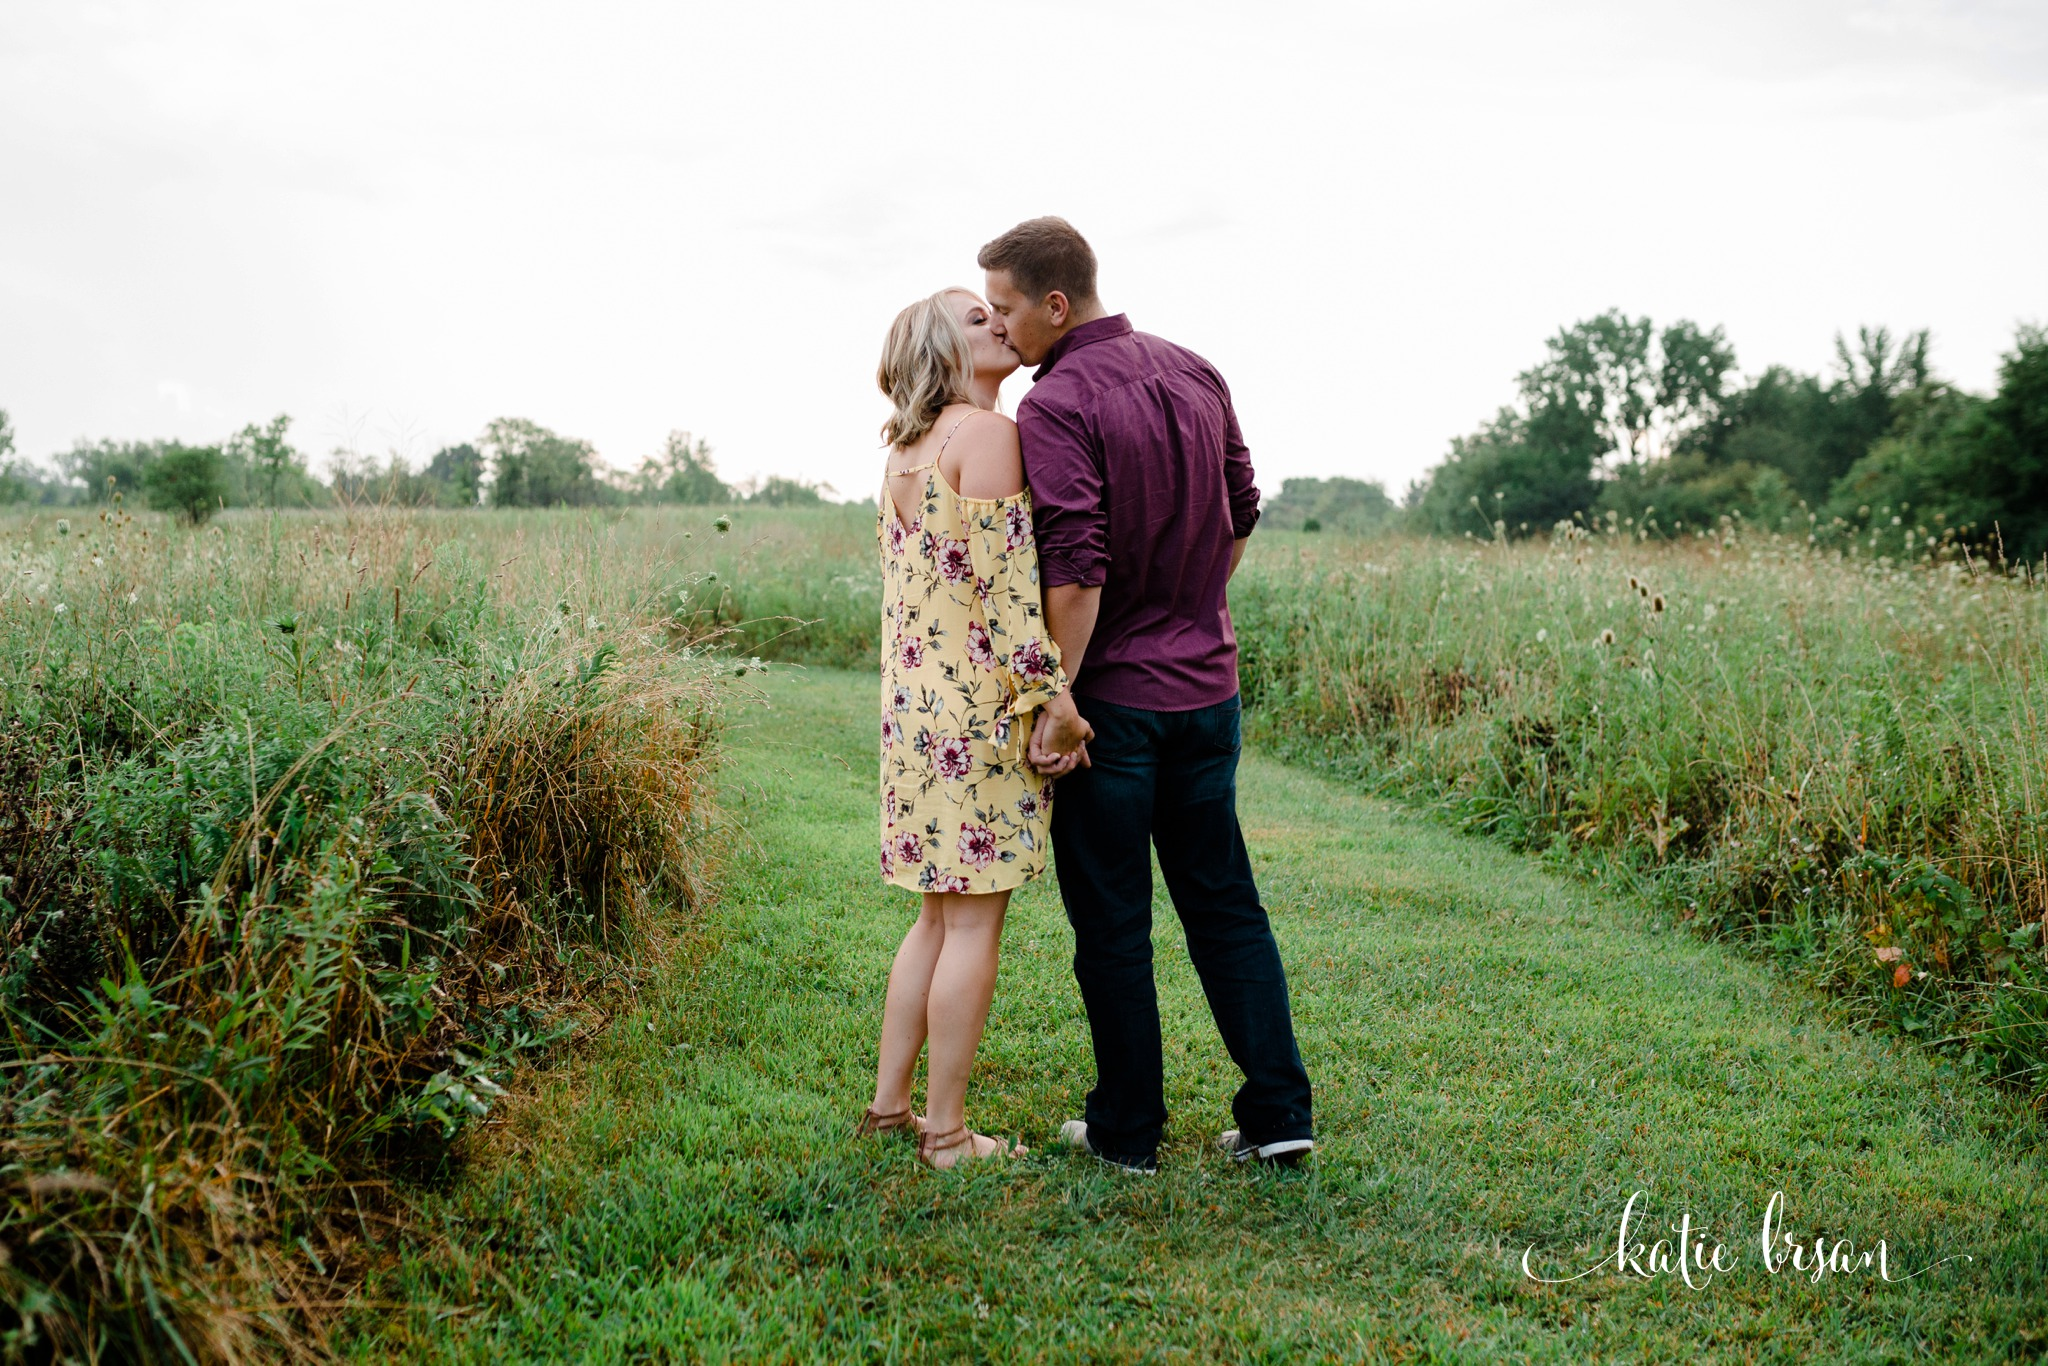 Mokena_Engagement_Session_CDandMe_Wedding_0014.jpg